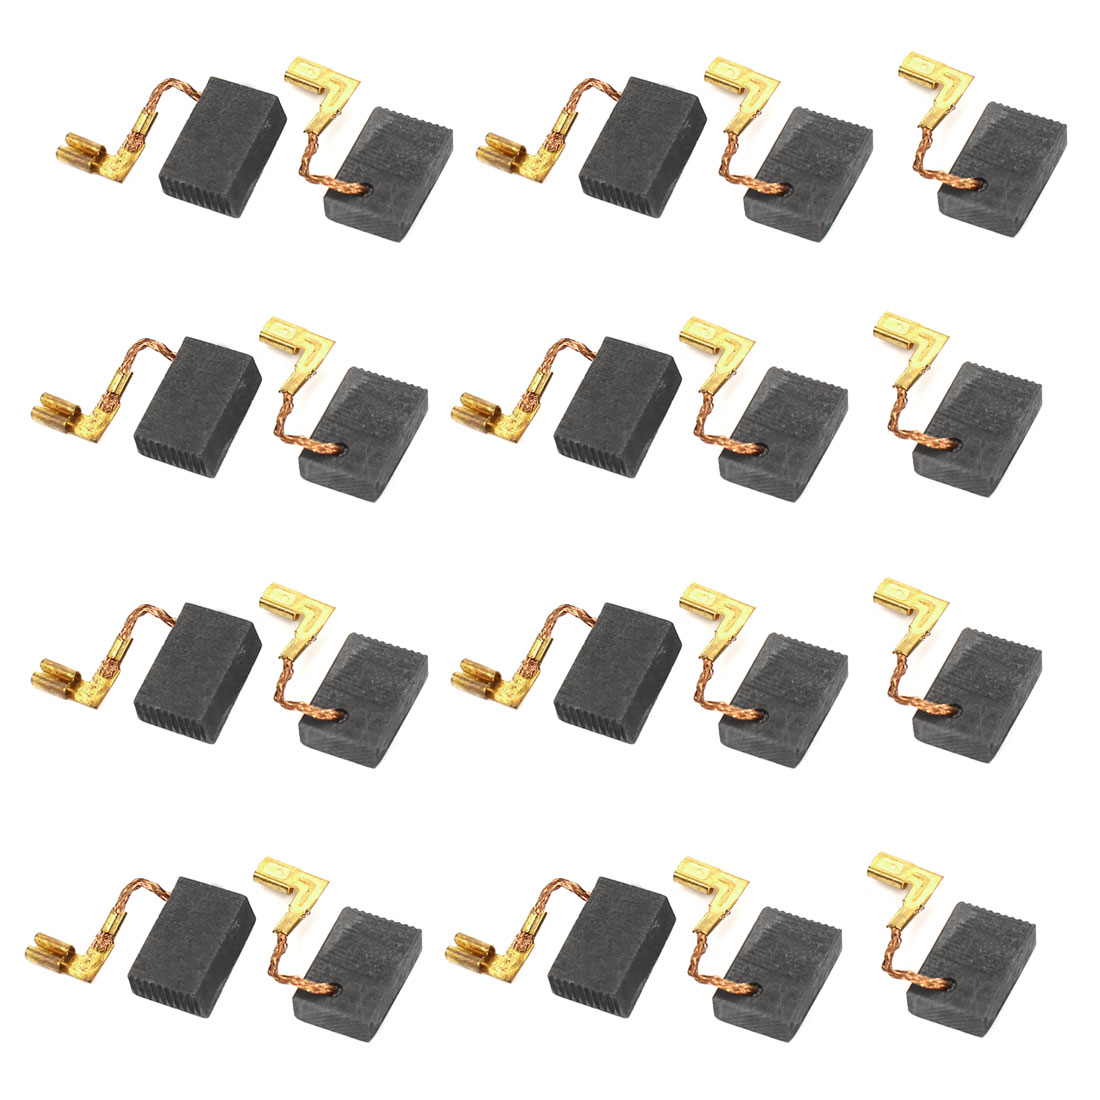 17mm x 11mm x 5mm Electric Drill Motor Rotary Power Tool Carbon Brush 10 Pairs